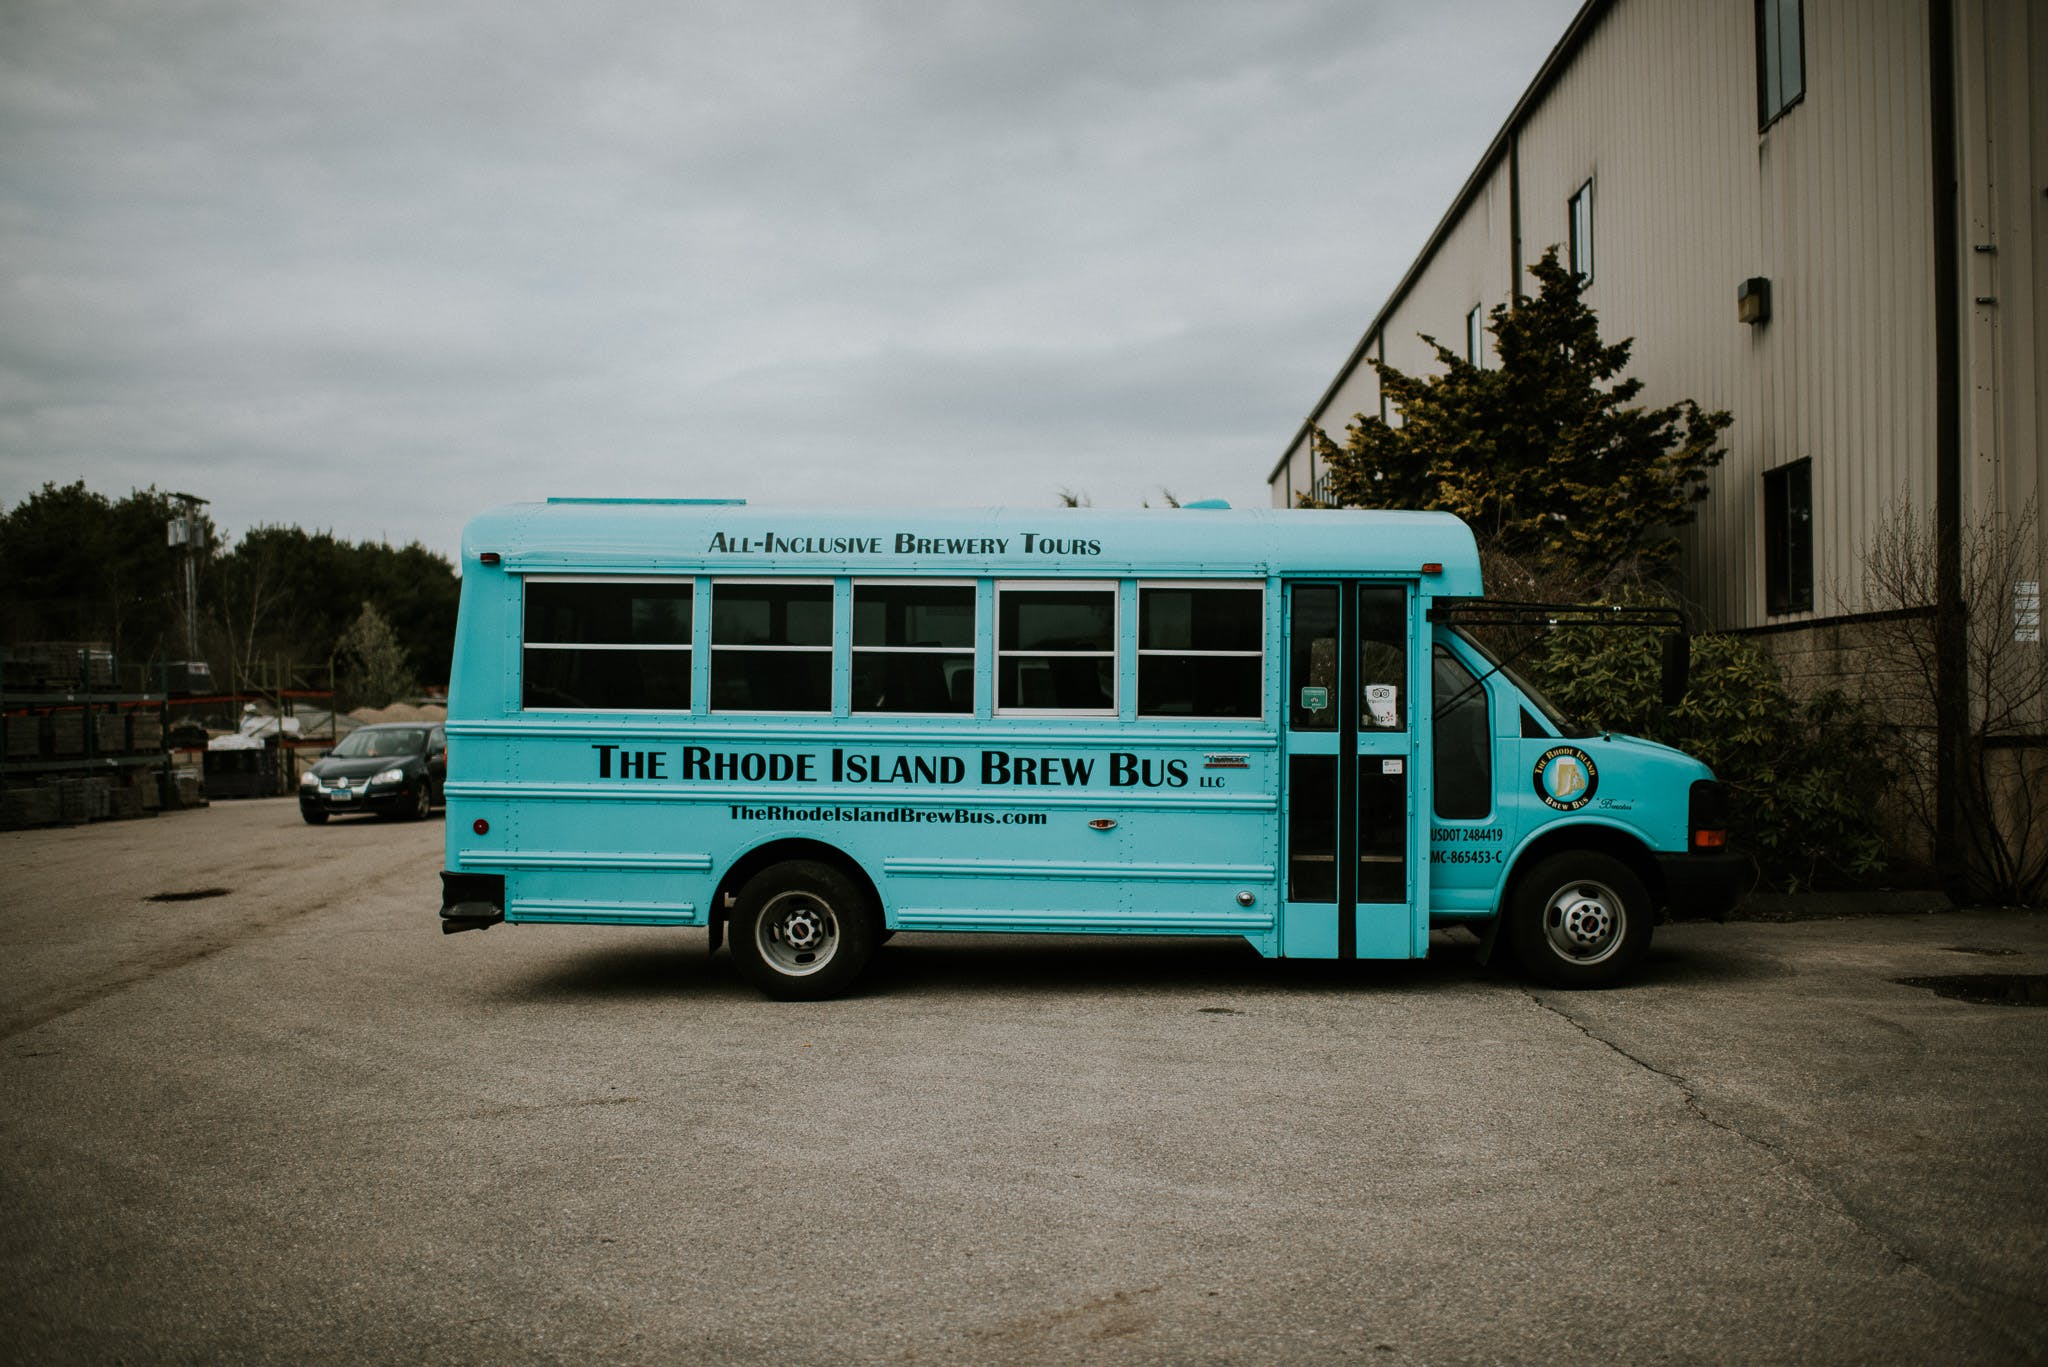 The Rhode Island Brew Bus parked